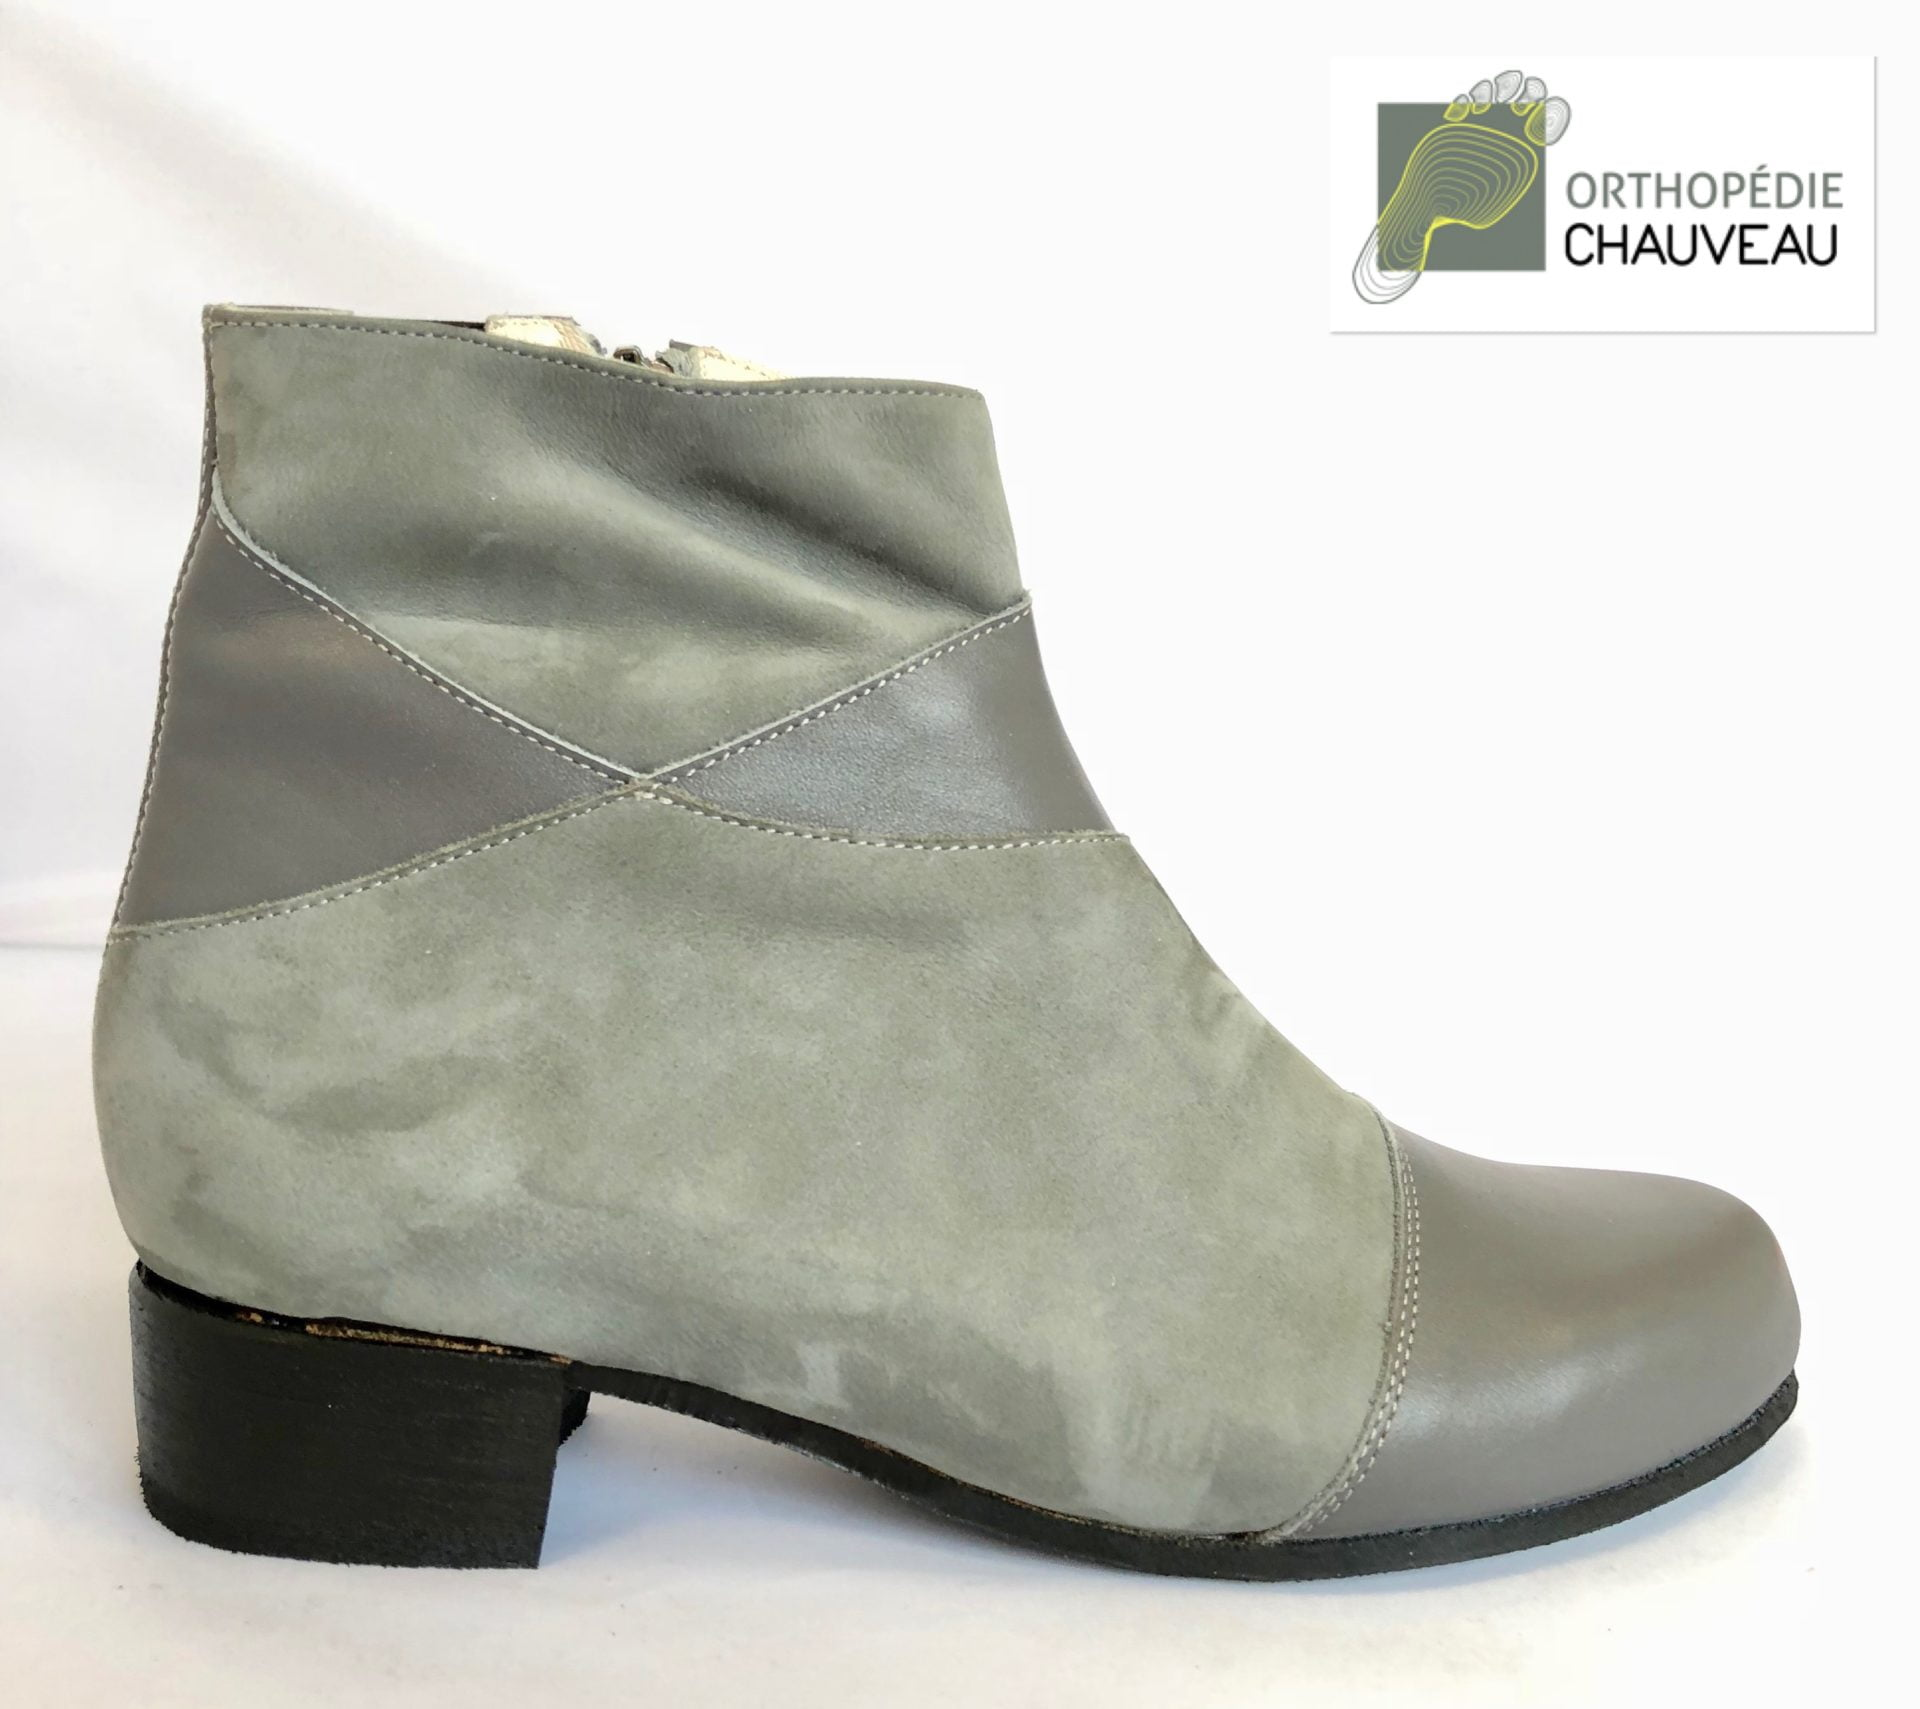 chaussures orthopediques Rennes bottines grise